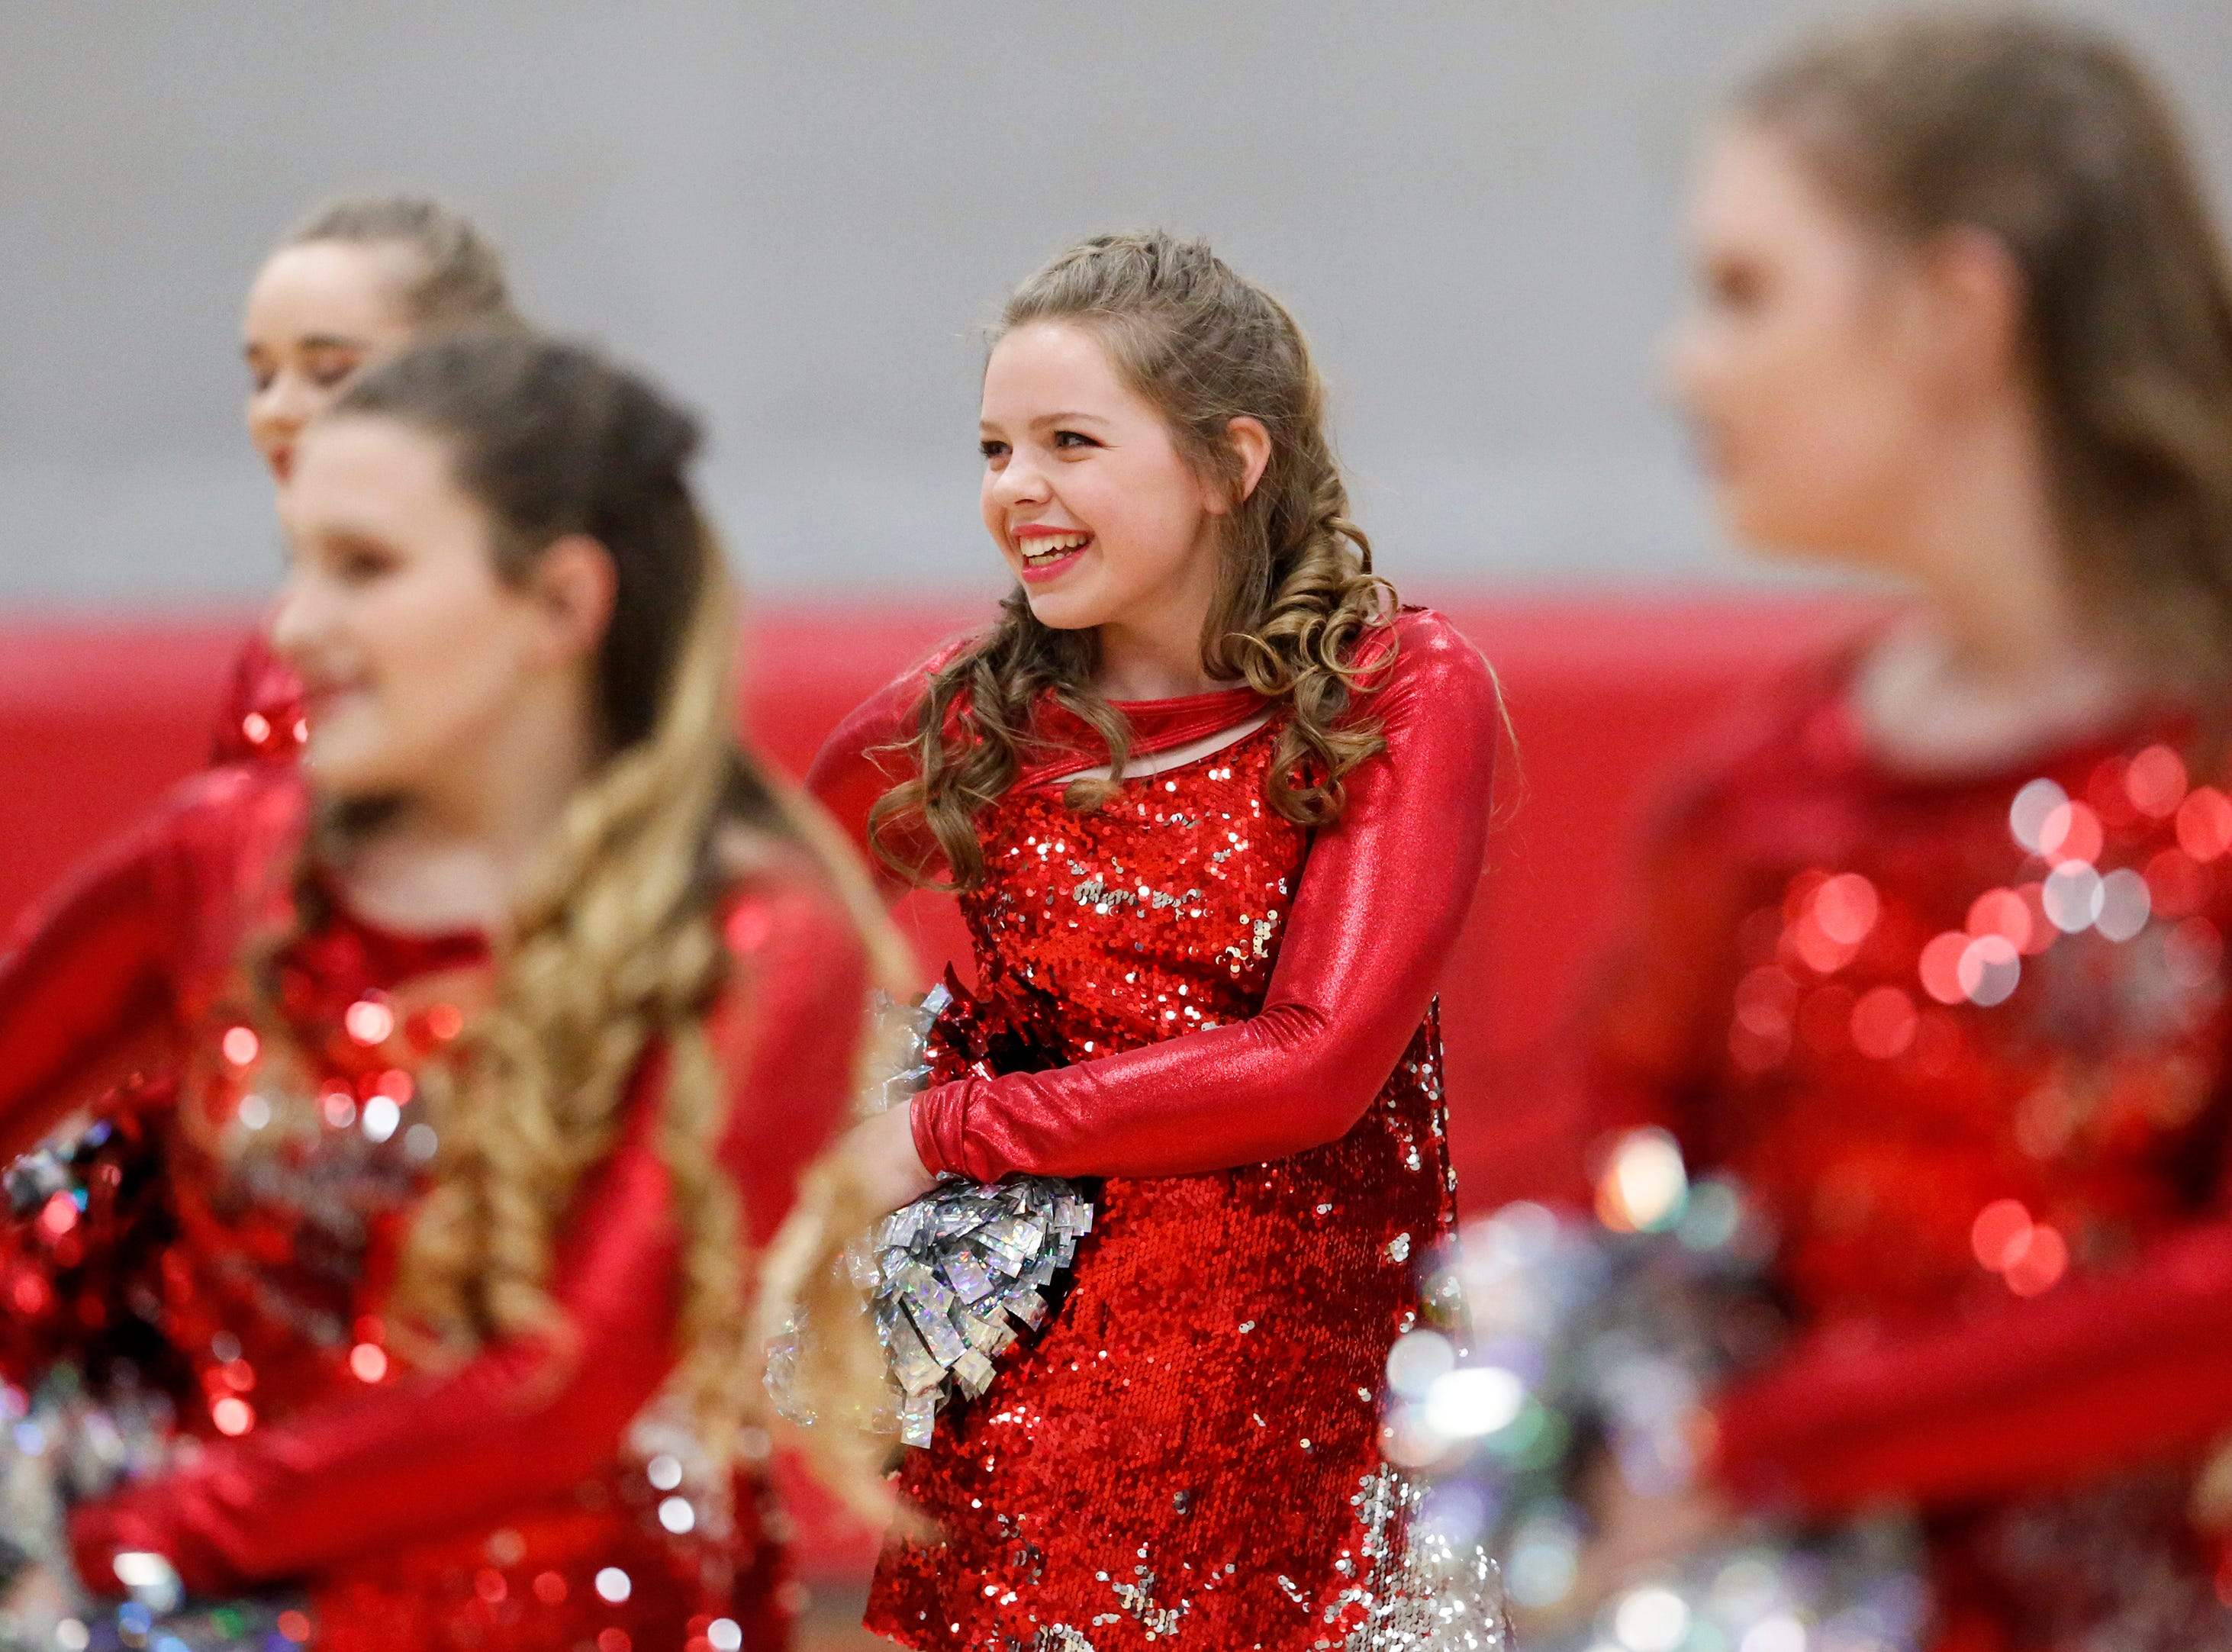 Manitowoc Lutheran's dance team performs at halftime during a boys basketball game against Kohler at Manitowoc Lutheran High School Friday, January 18, 2019, in Manitowoc, Wis. Joshua Clark/USA TODAY NETWORK-Wisconsin